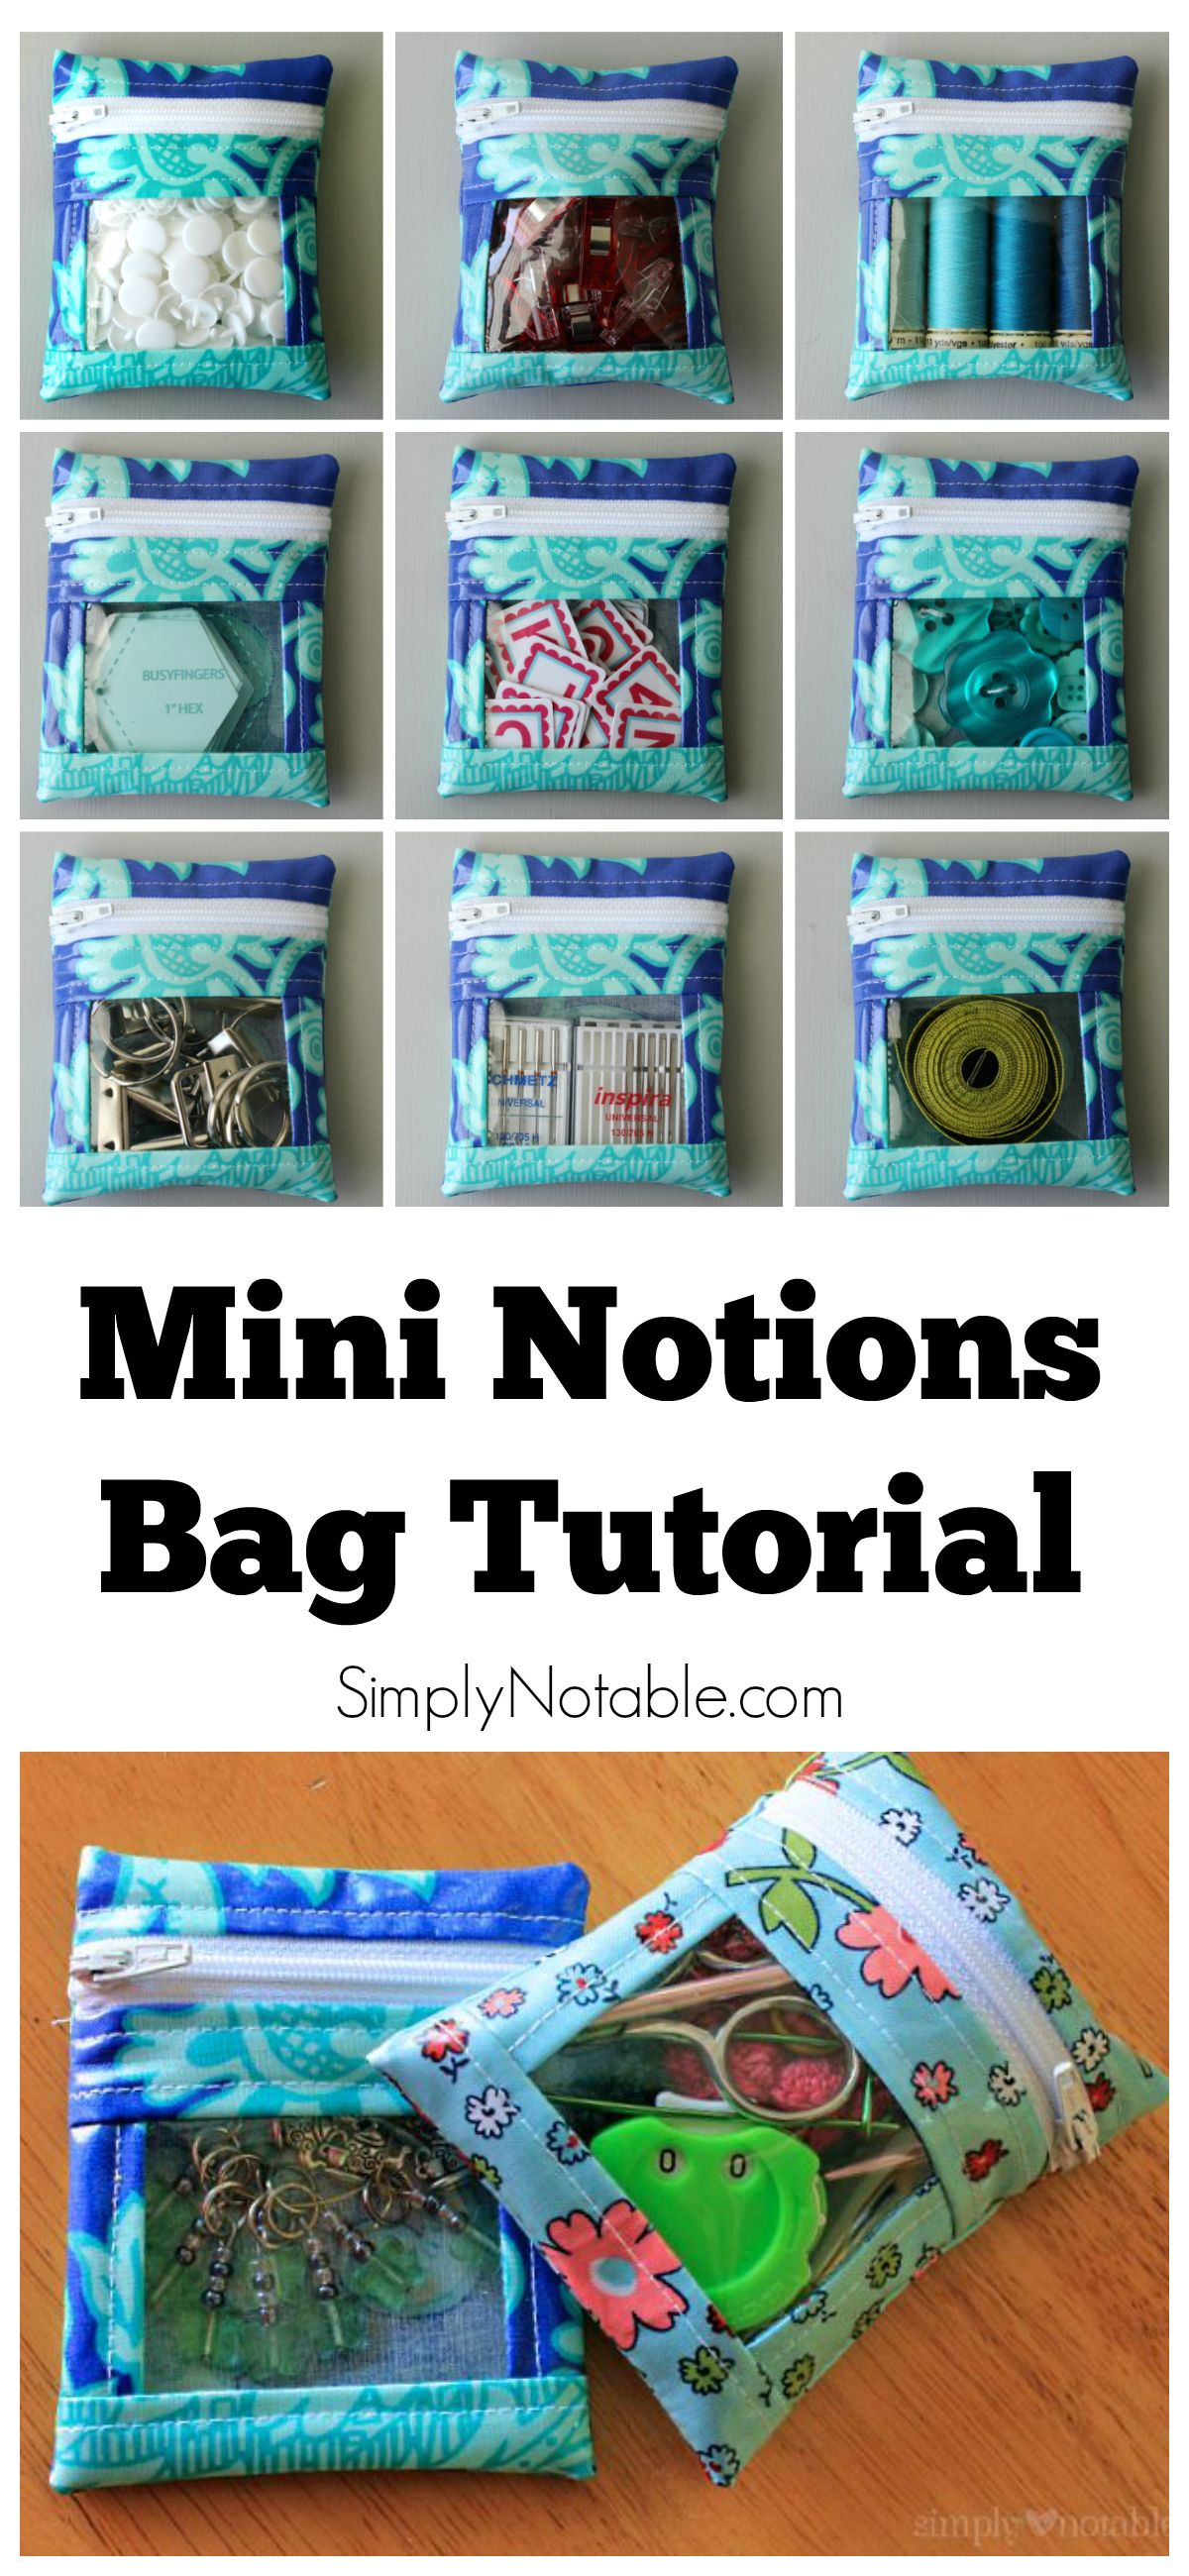 These Mini Notions Bags Are Perfect For Holding My Small